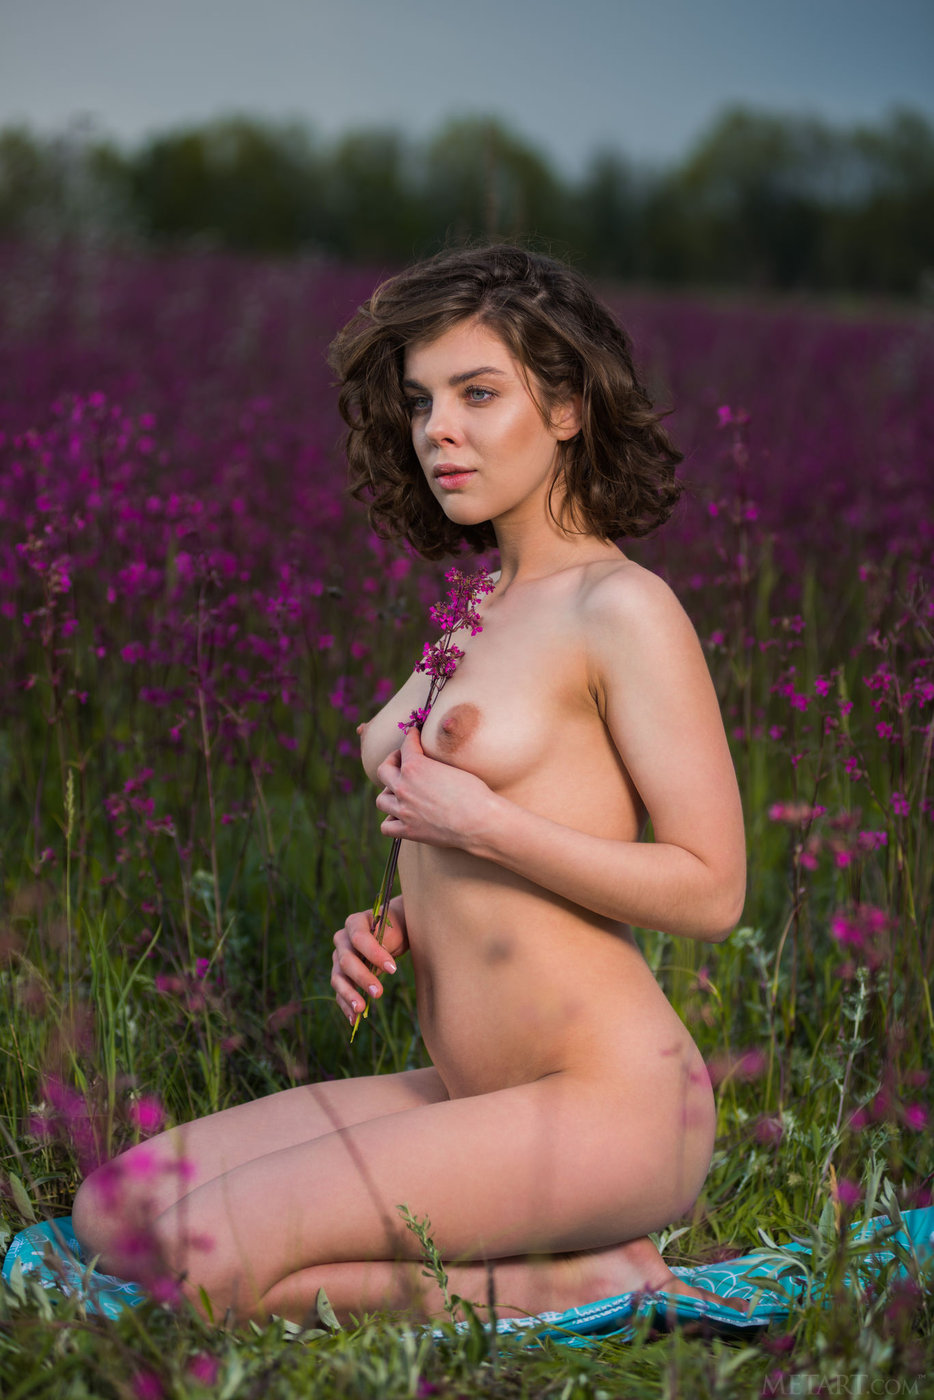 Curly-haired hottie with beautiful breasts posing in a beautiful field